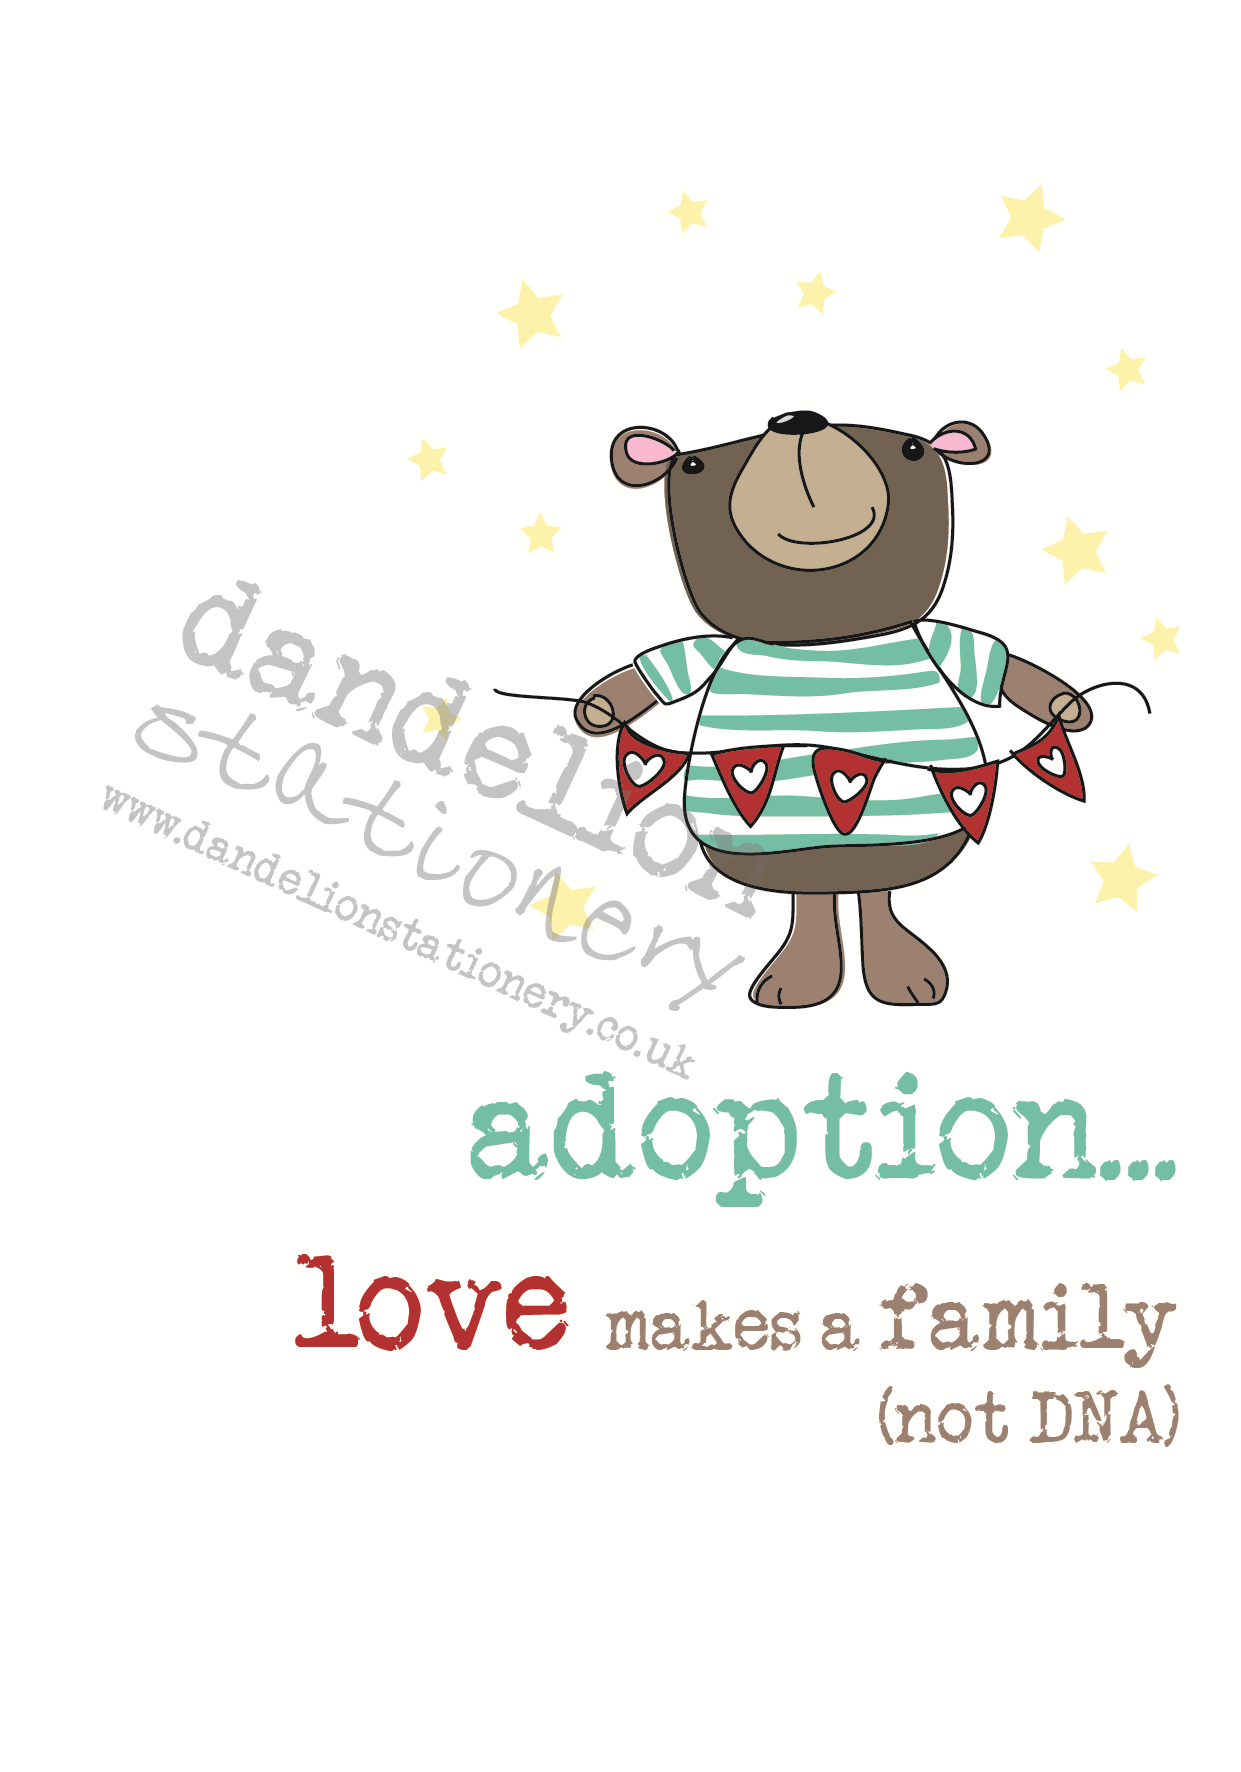 Adoption sparkle finished greeting card cards love kates adoption sparkle finished greeting card m4hsunfo